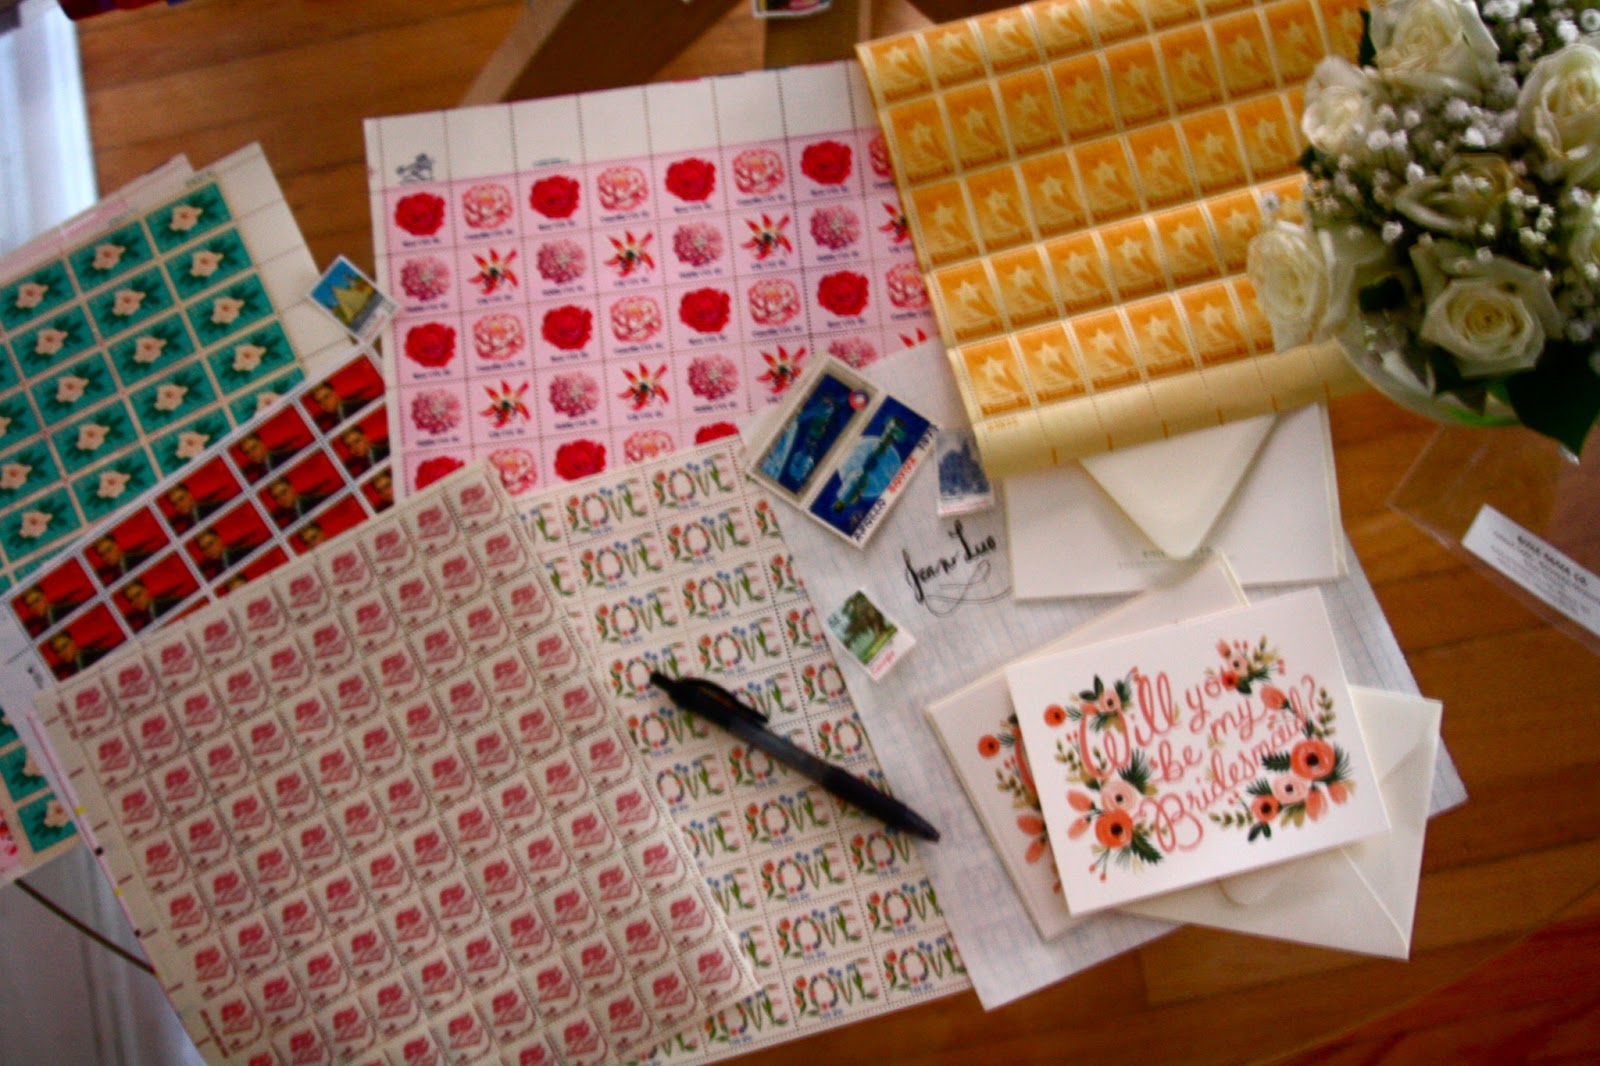 rebuild health and home vintage stamp collection for wedding save the dates, invites, and bridesmaid cards